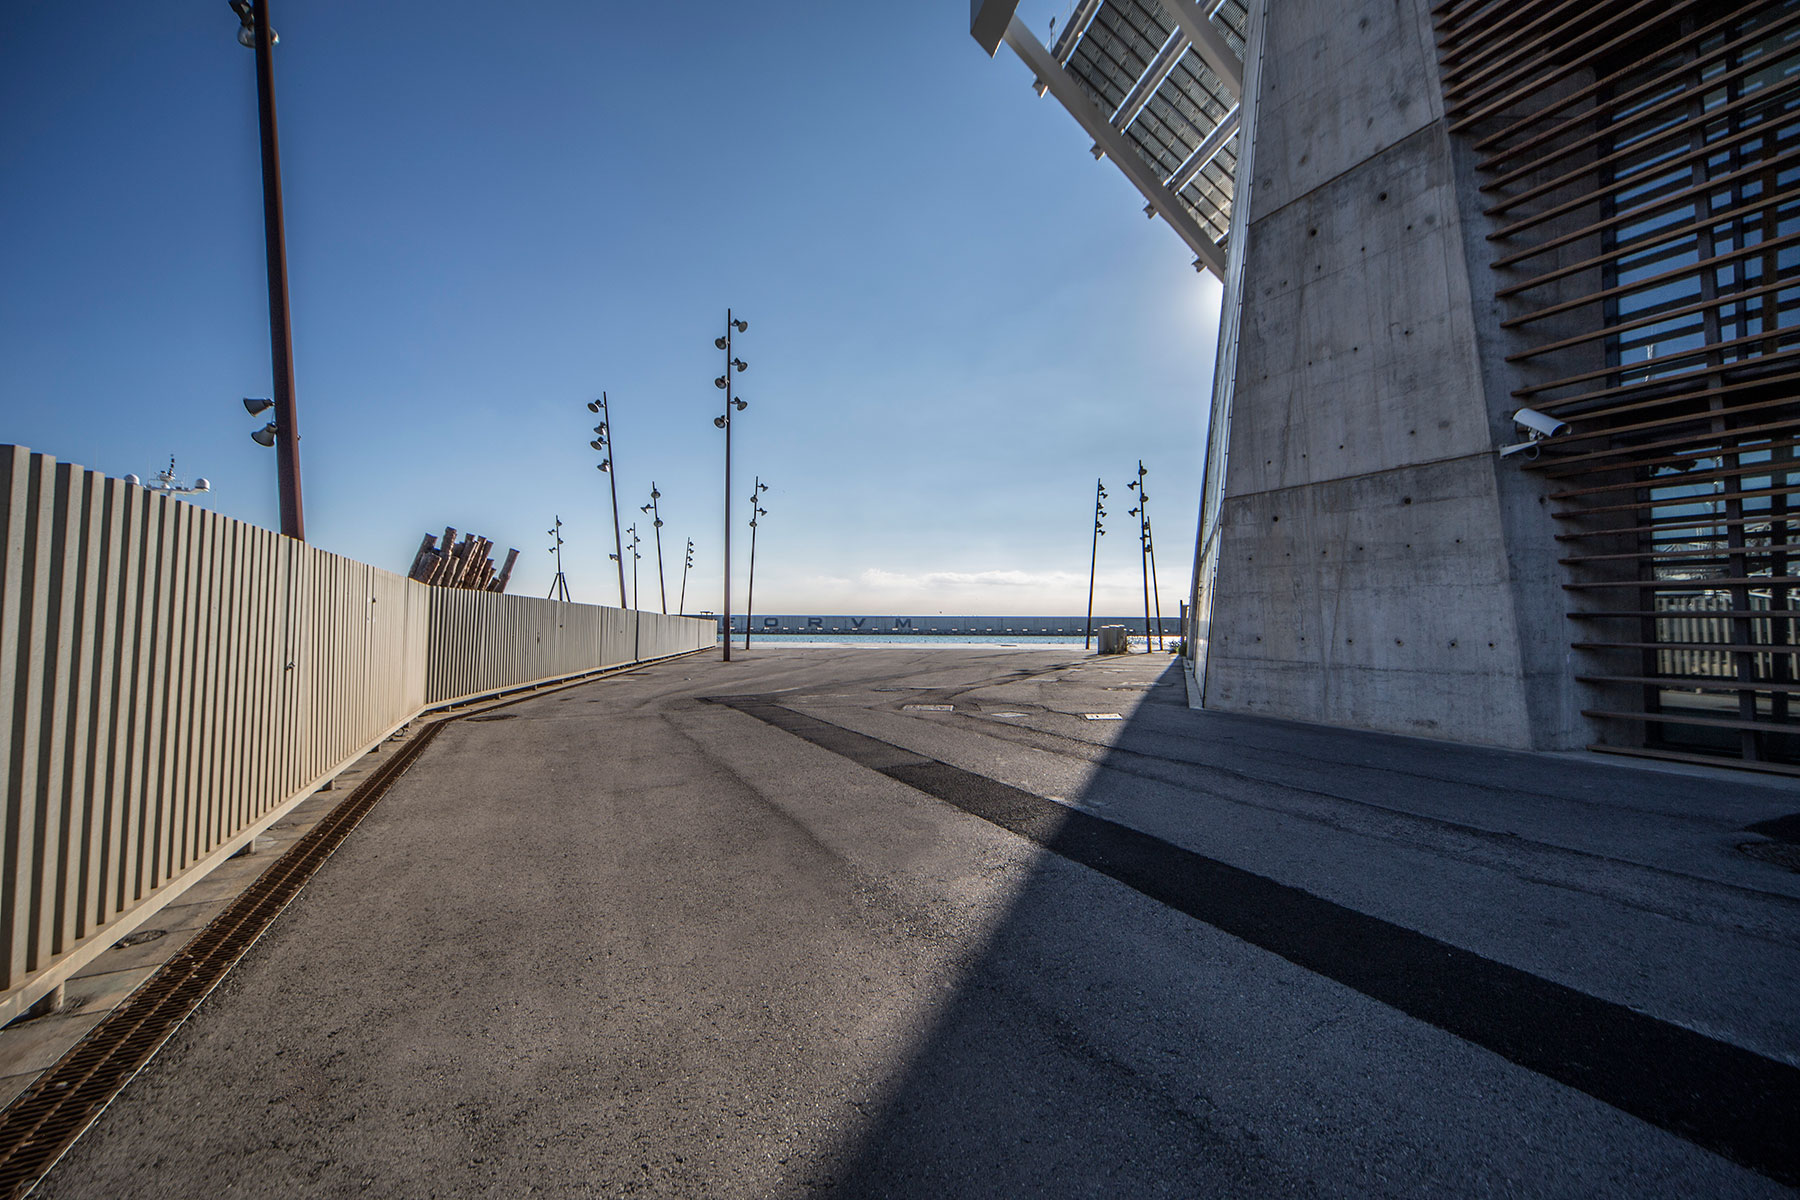 016_parc_del_forum_barcelona_location_bsm